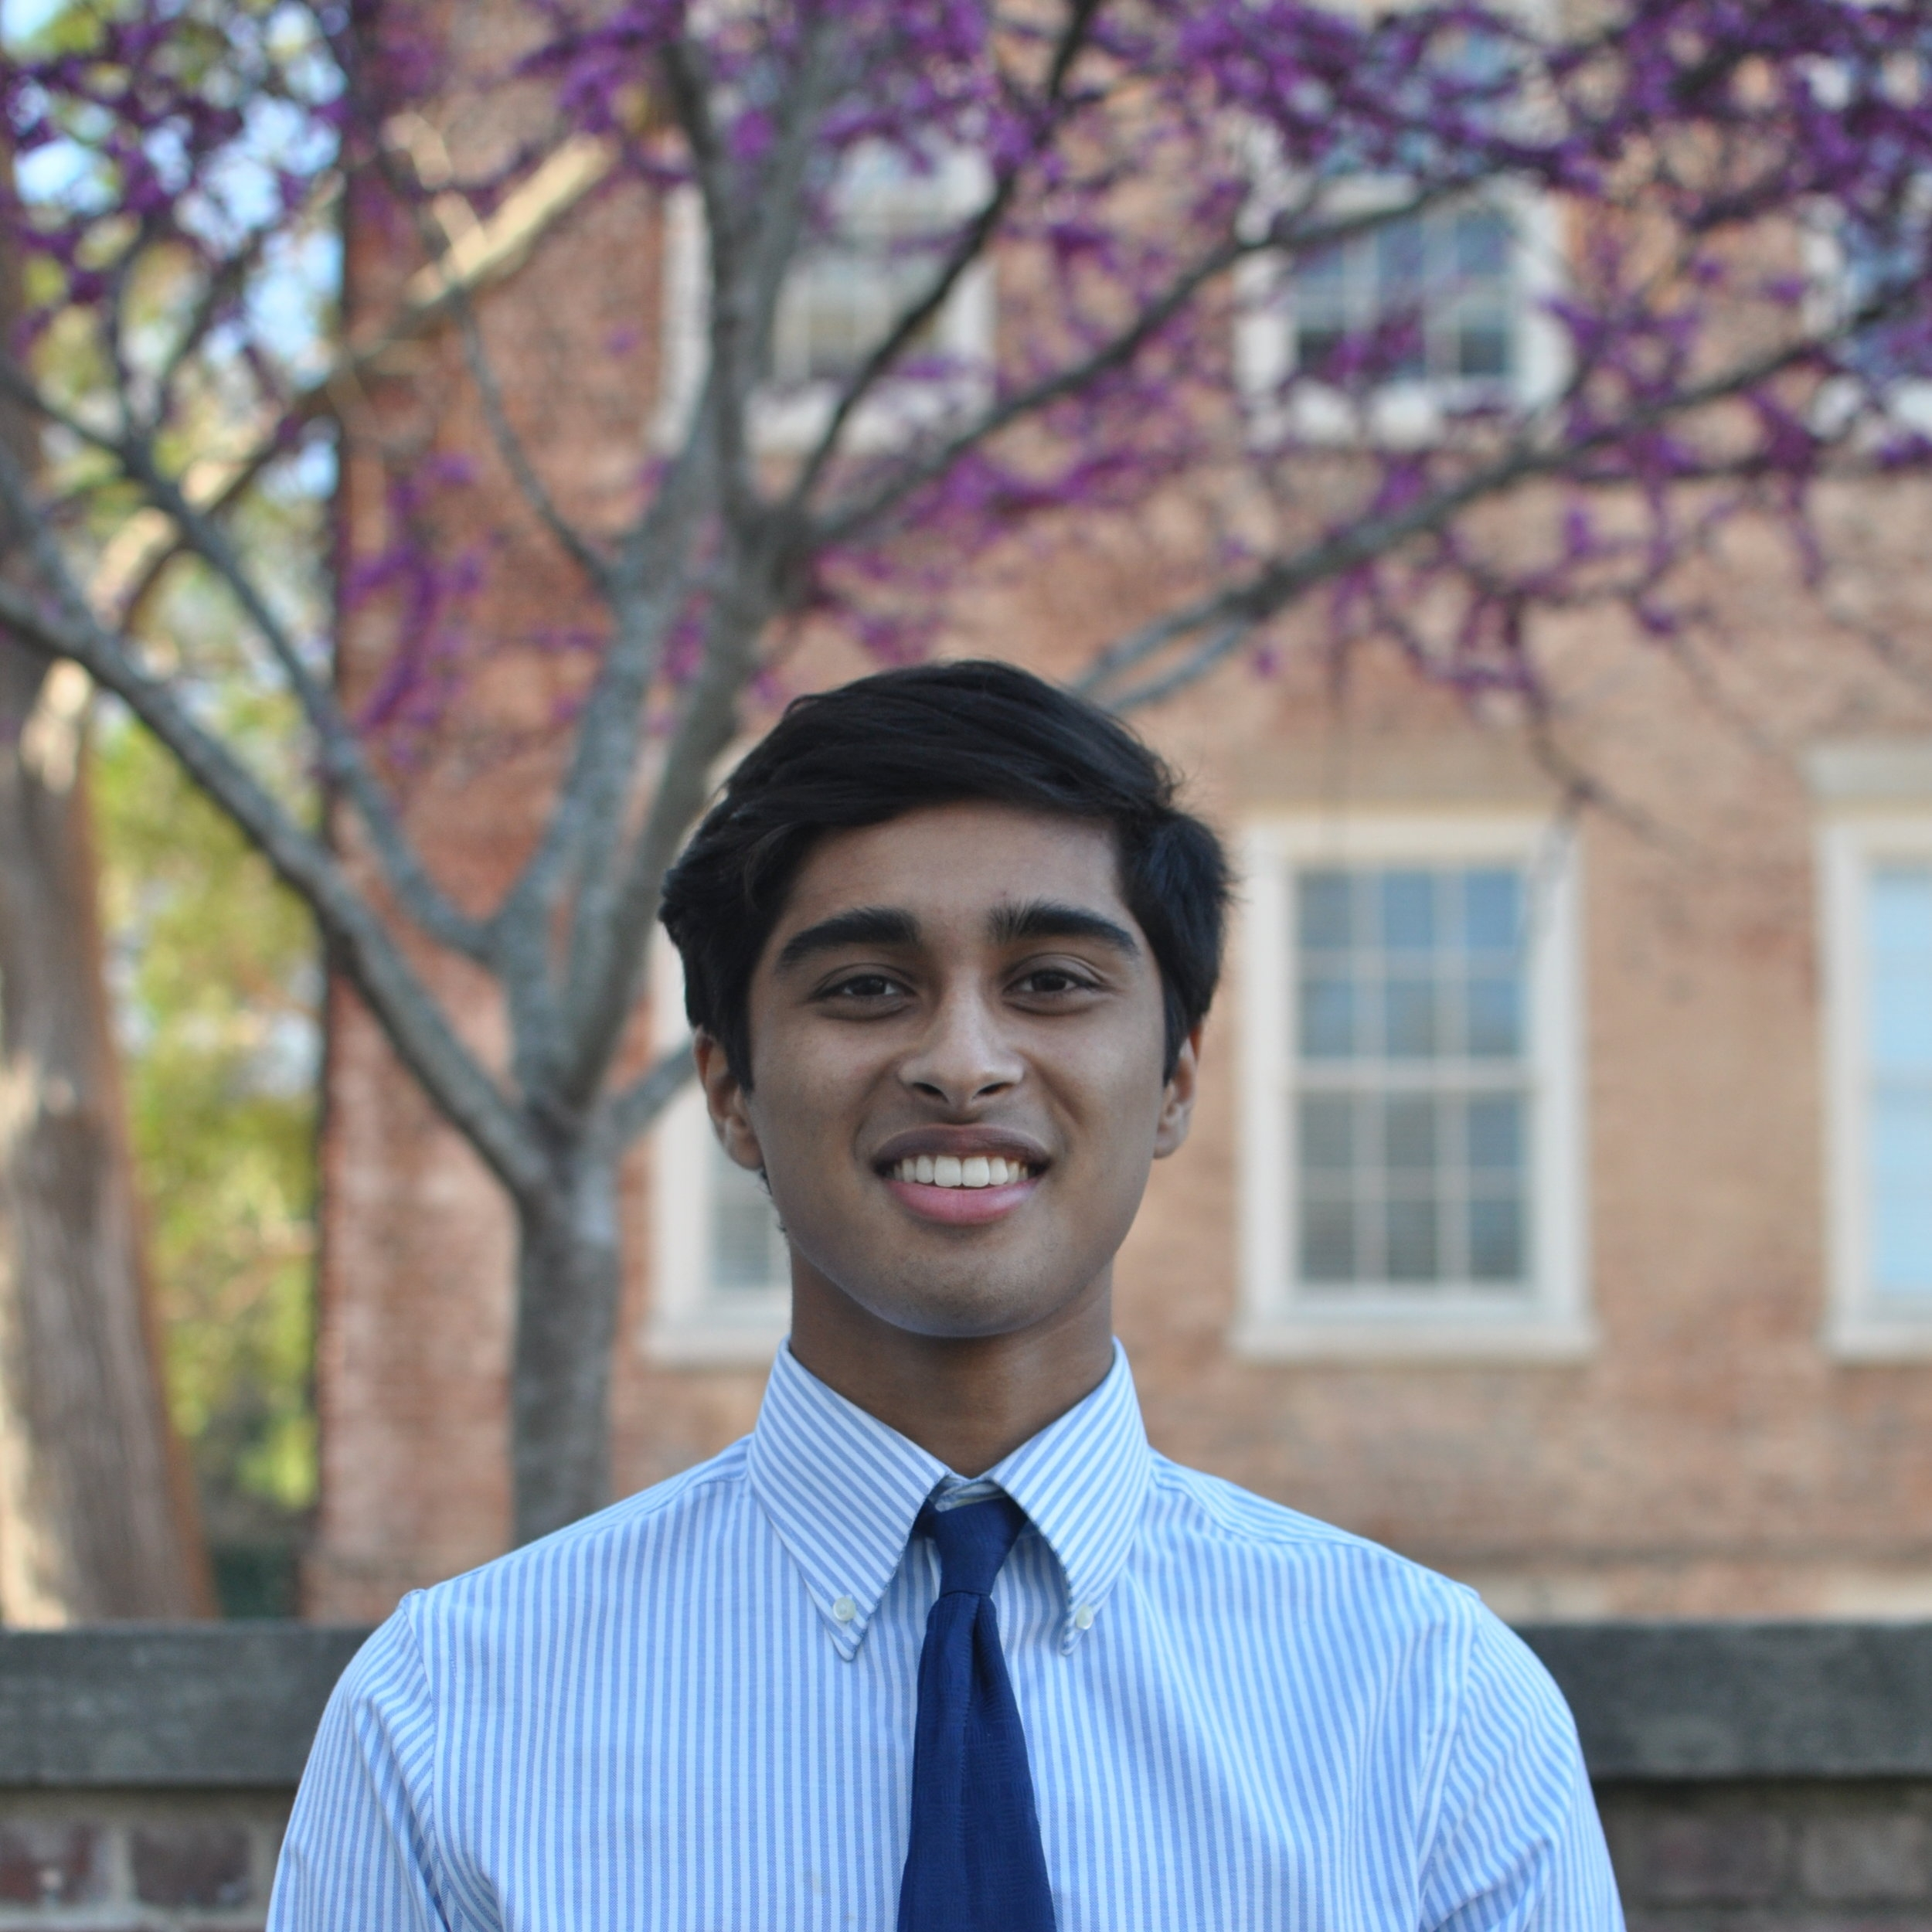 Utshab Chakraborty, Publicity Chair